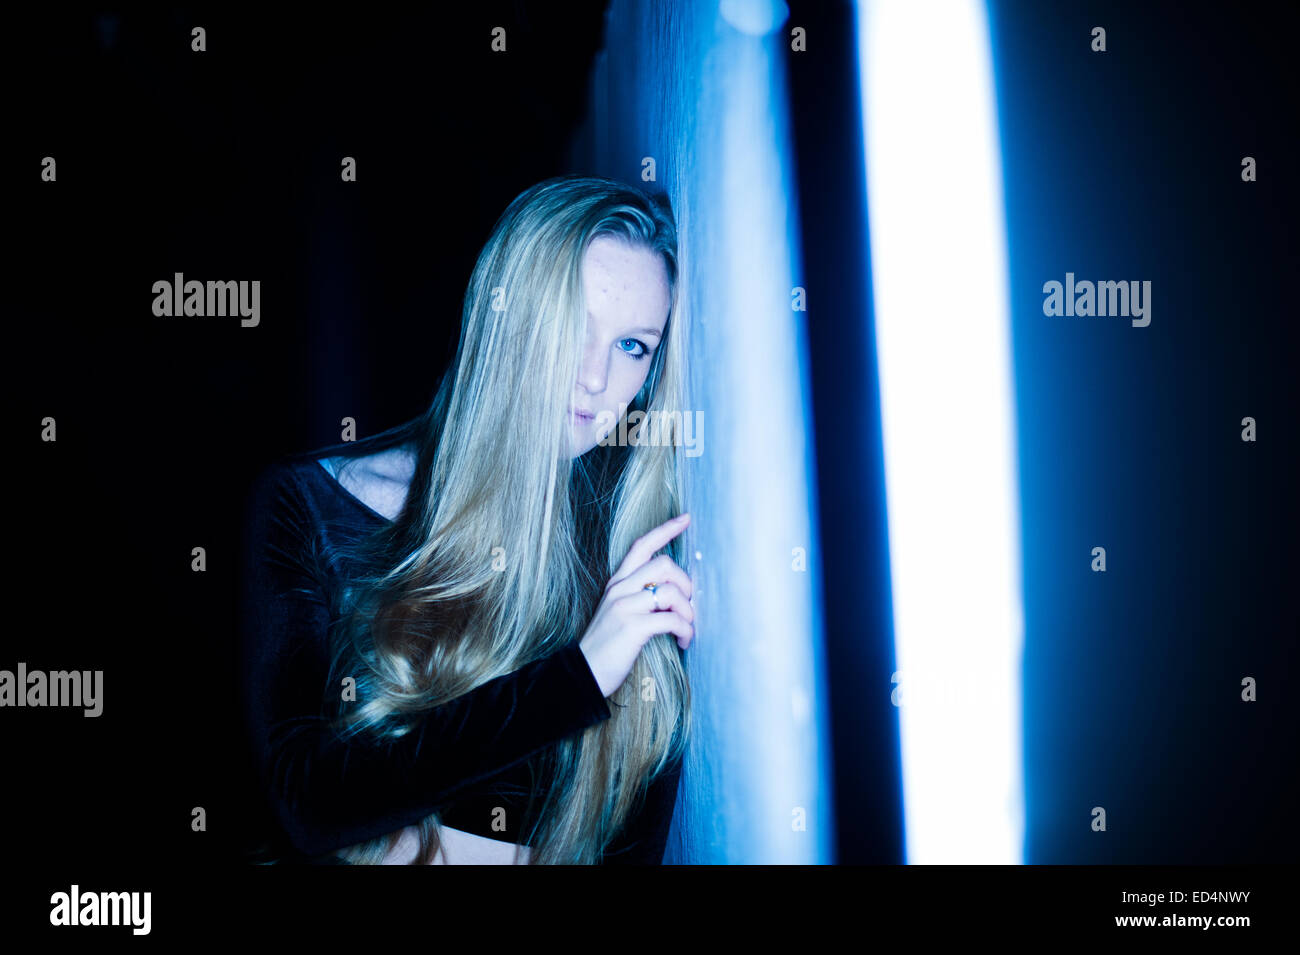 blue: a young woman (18 year old girl) with long blonde hair, solo